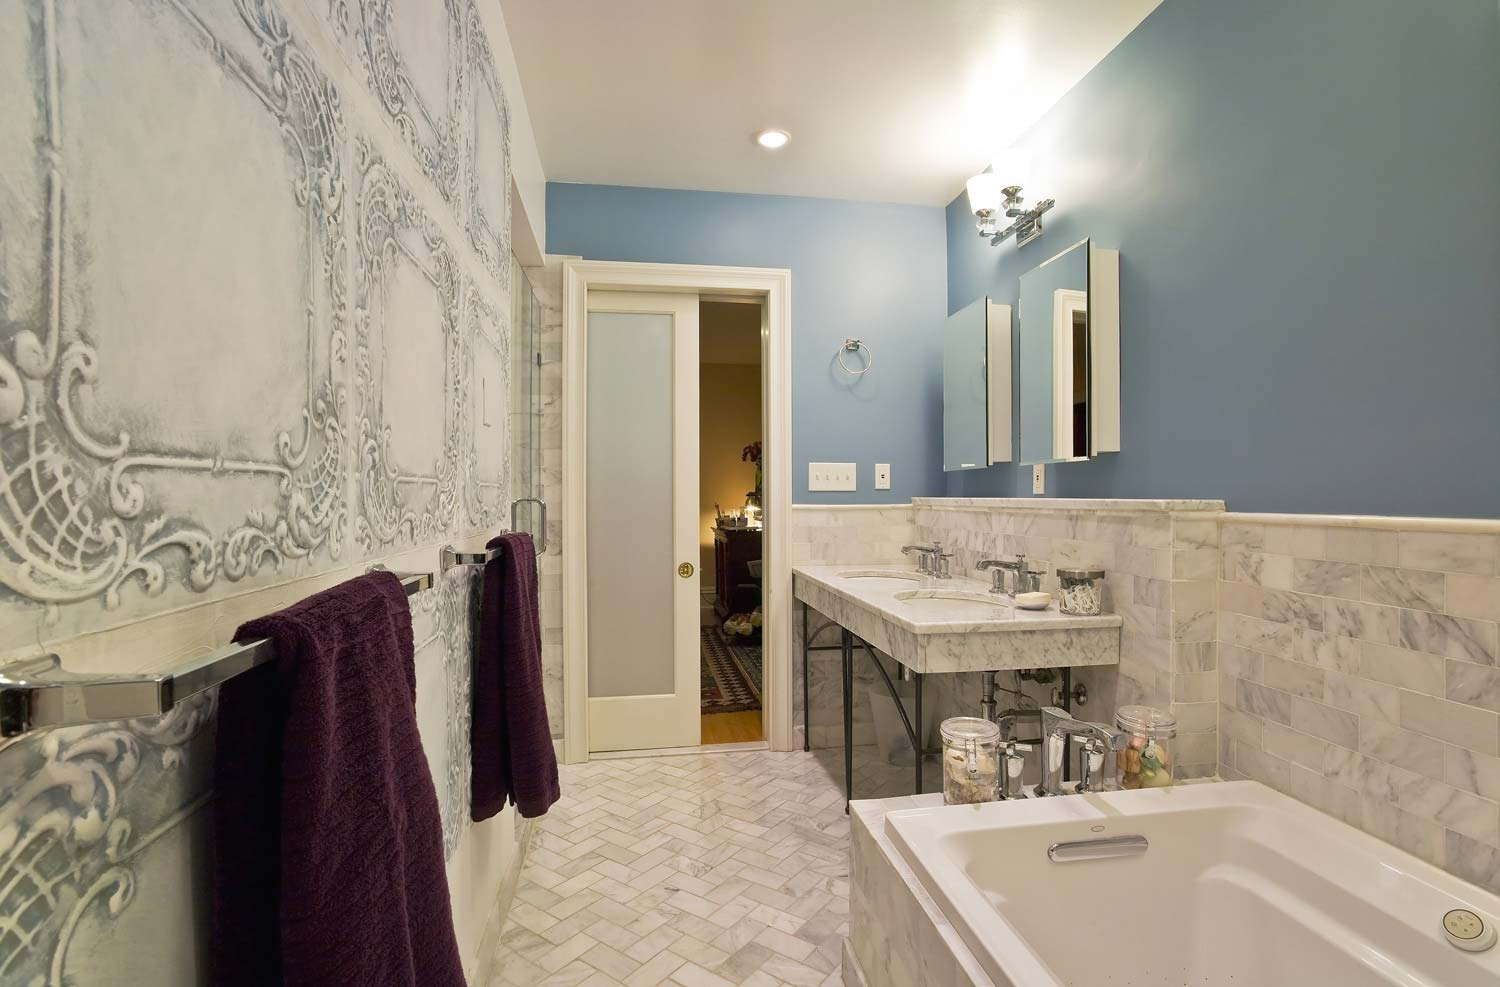 The new master bathroom at this residential project in Brooklyn by OCV Architects.